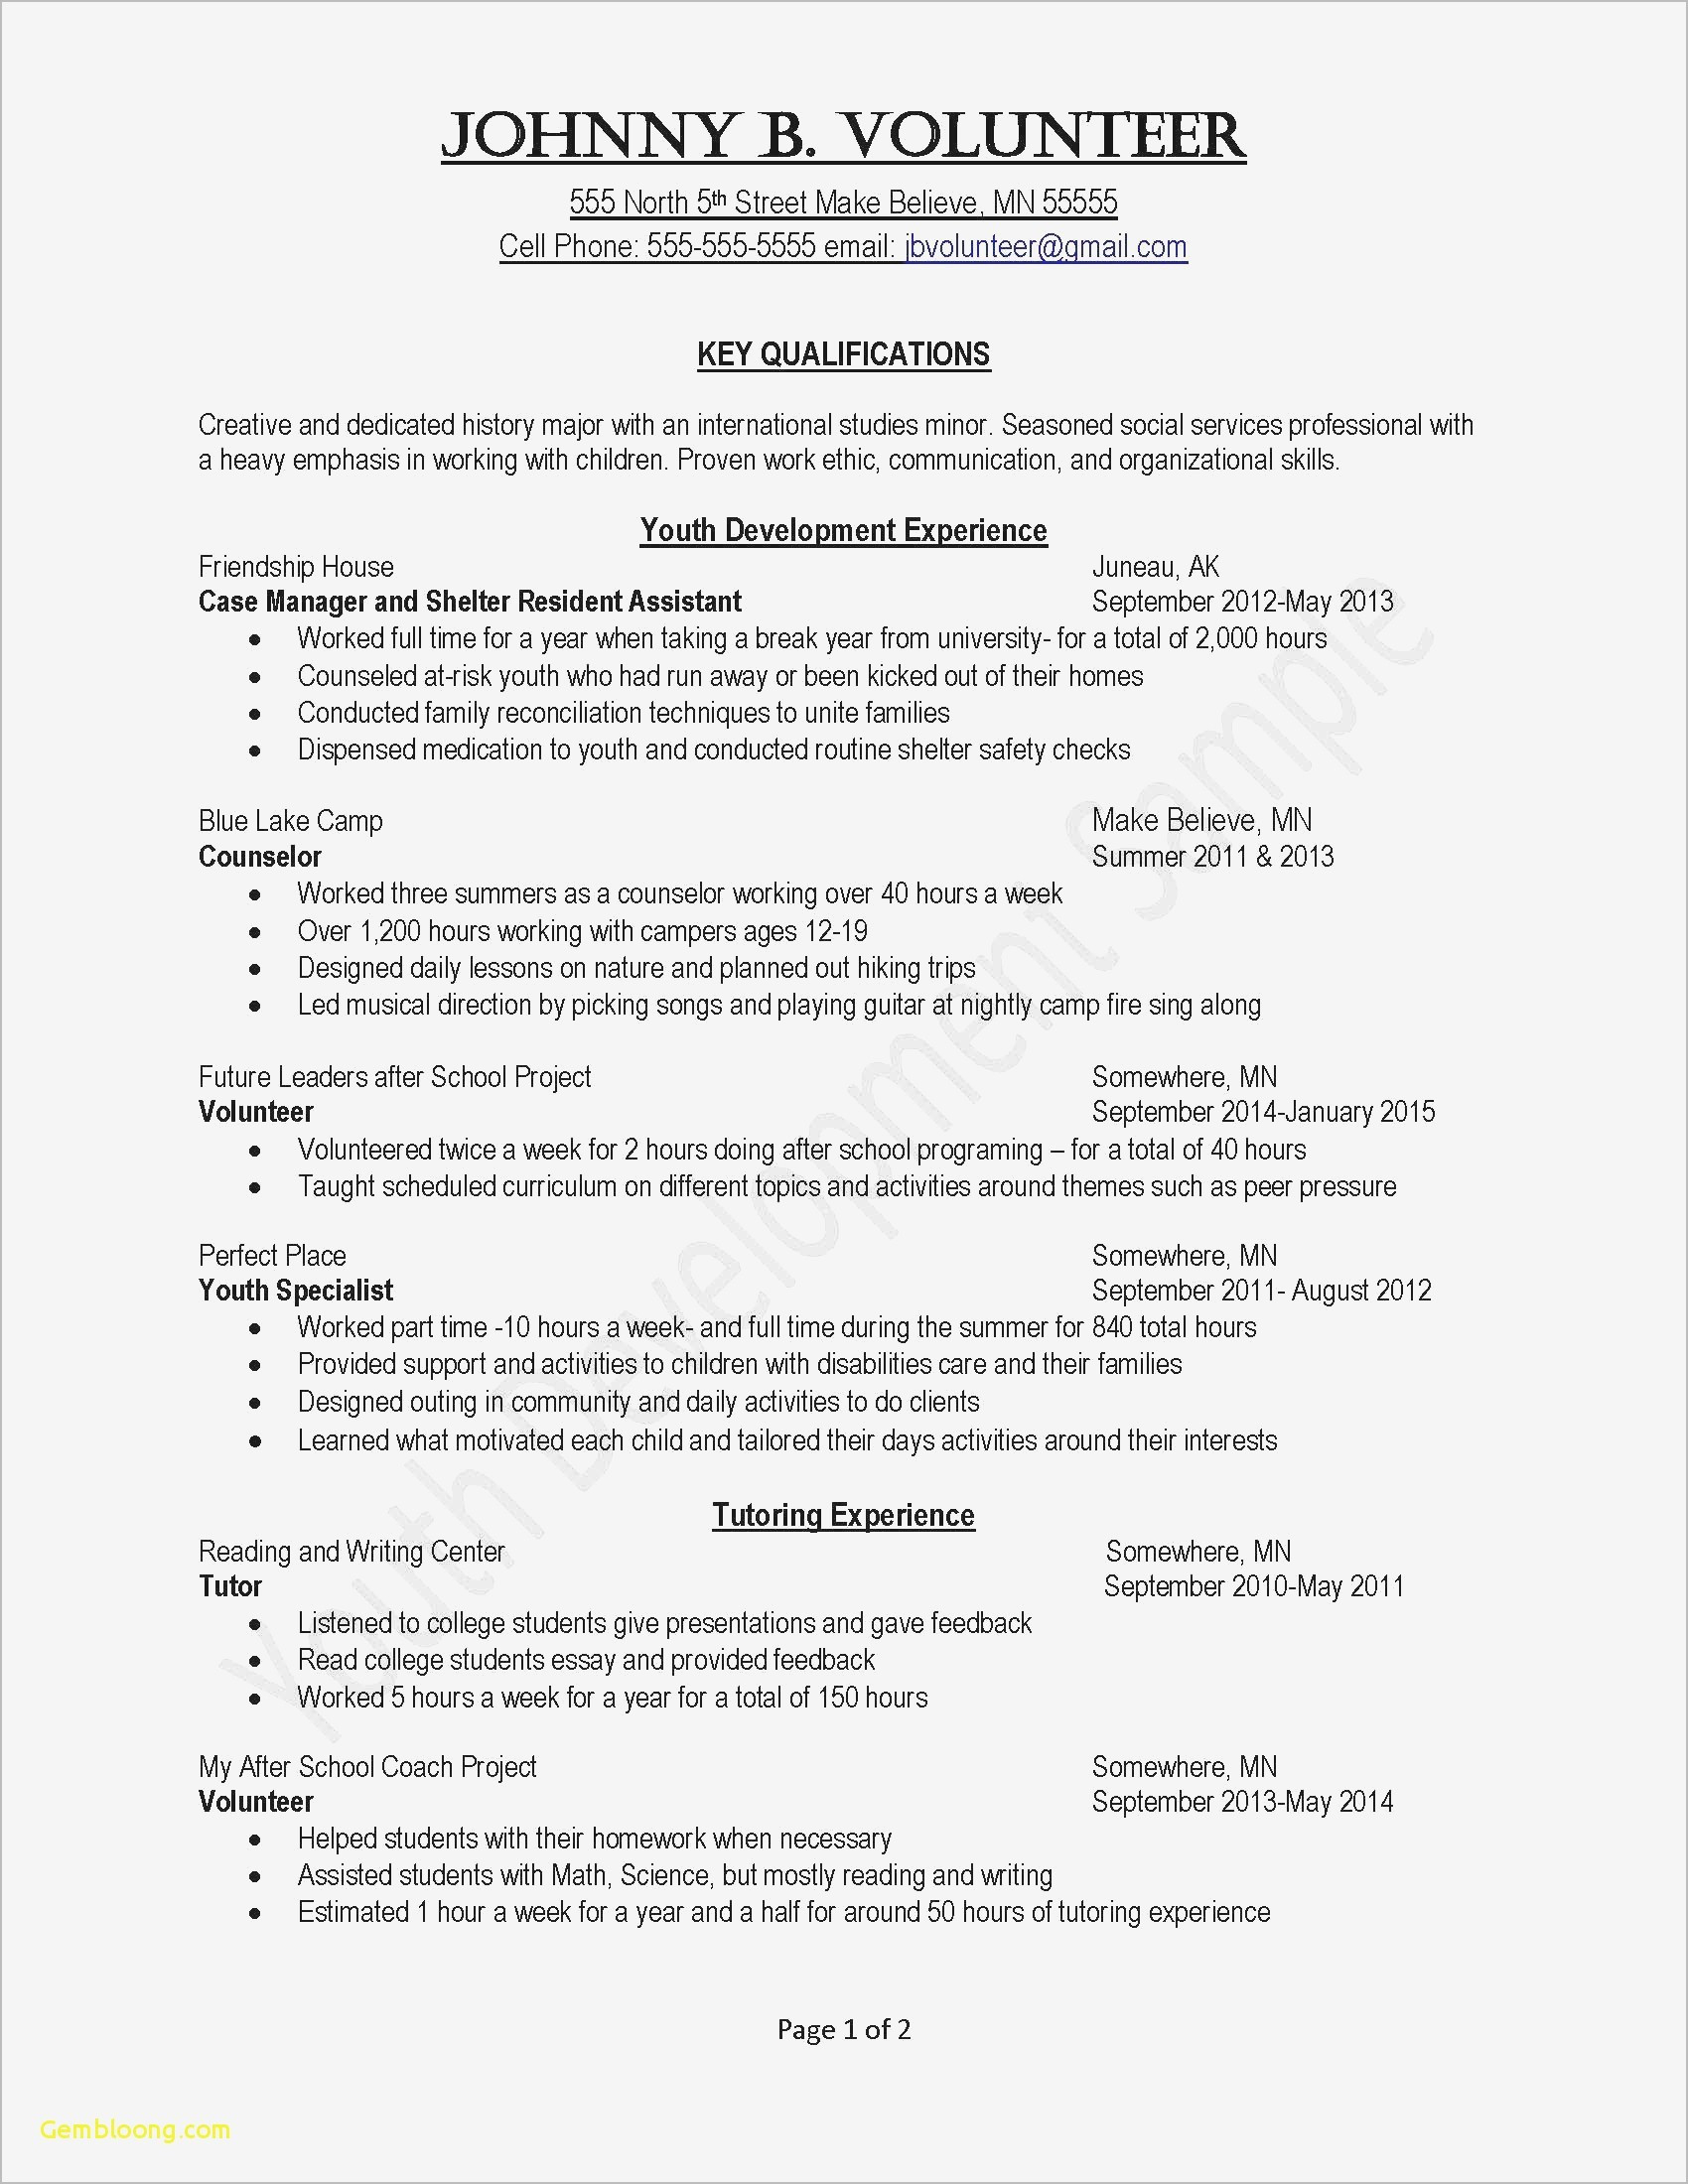 fire employee letter template example-Sample Employment fer Letter Elegant Job Fer Letter Template Us Copy Od Consultant Cover Letter Fungram 20-k